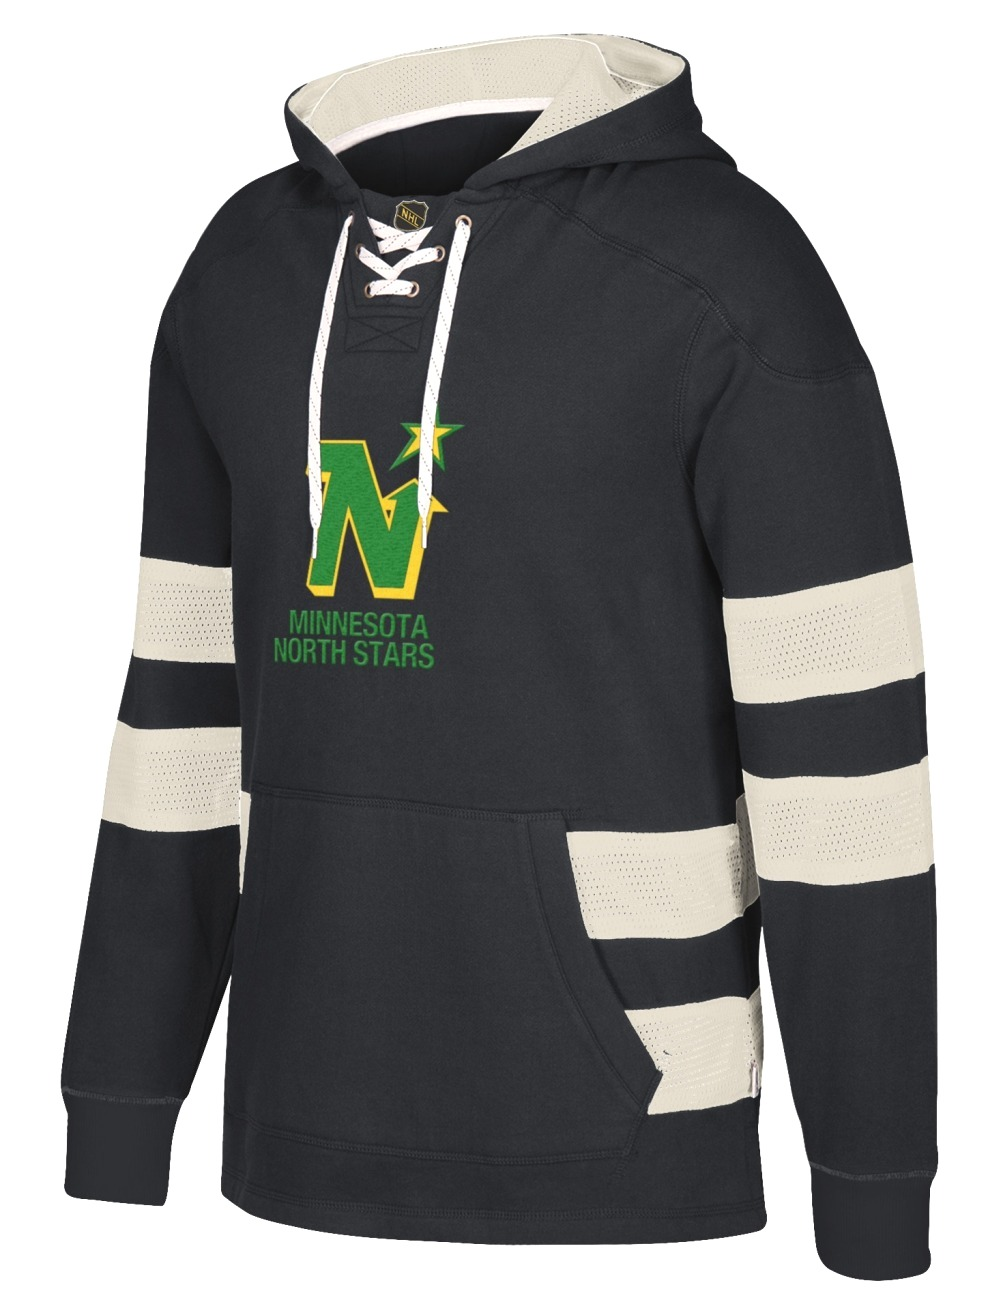 "Minnesota North Stars CCM NHL ""Penalty Kill"" Men's Vintage Jersey Sweatshirt"